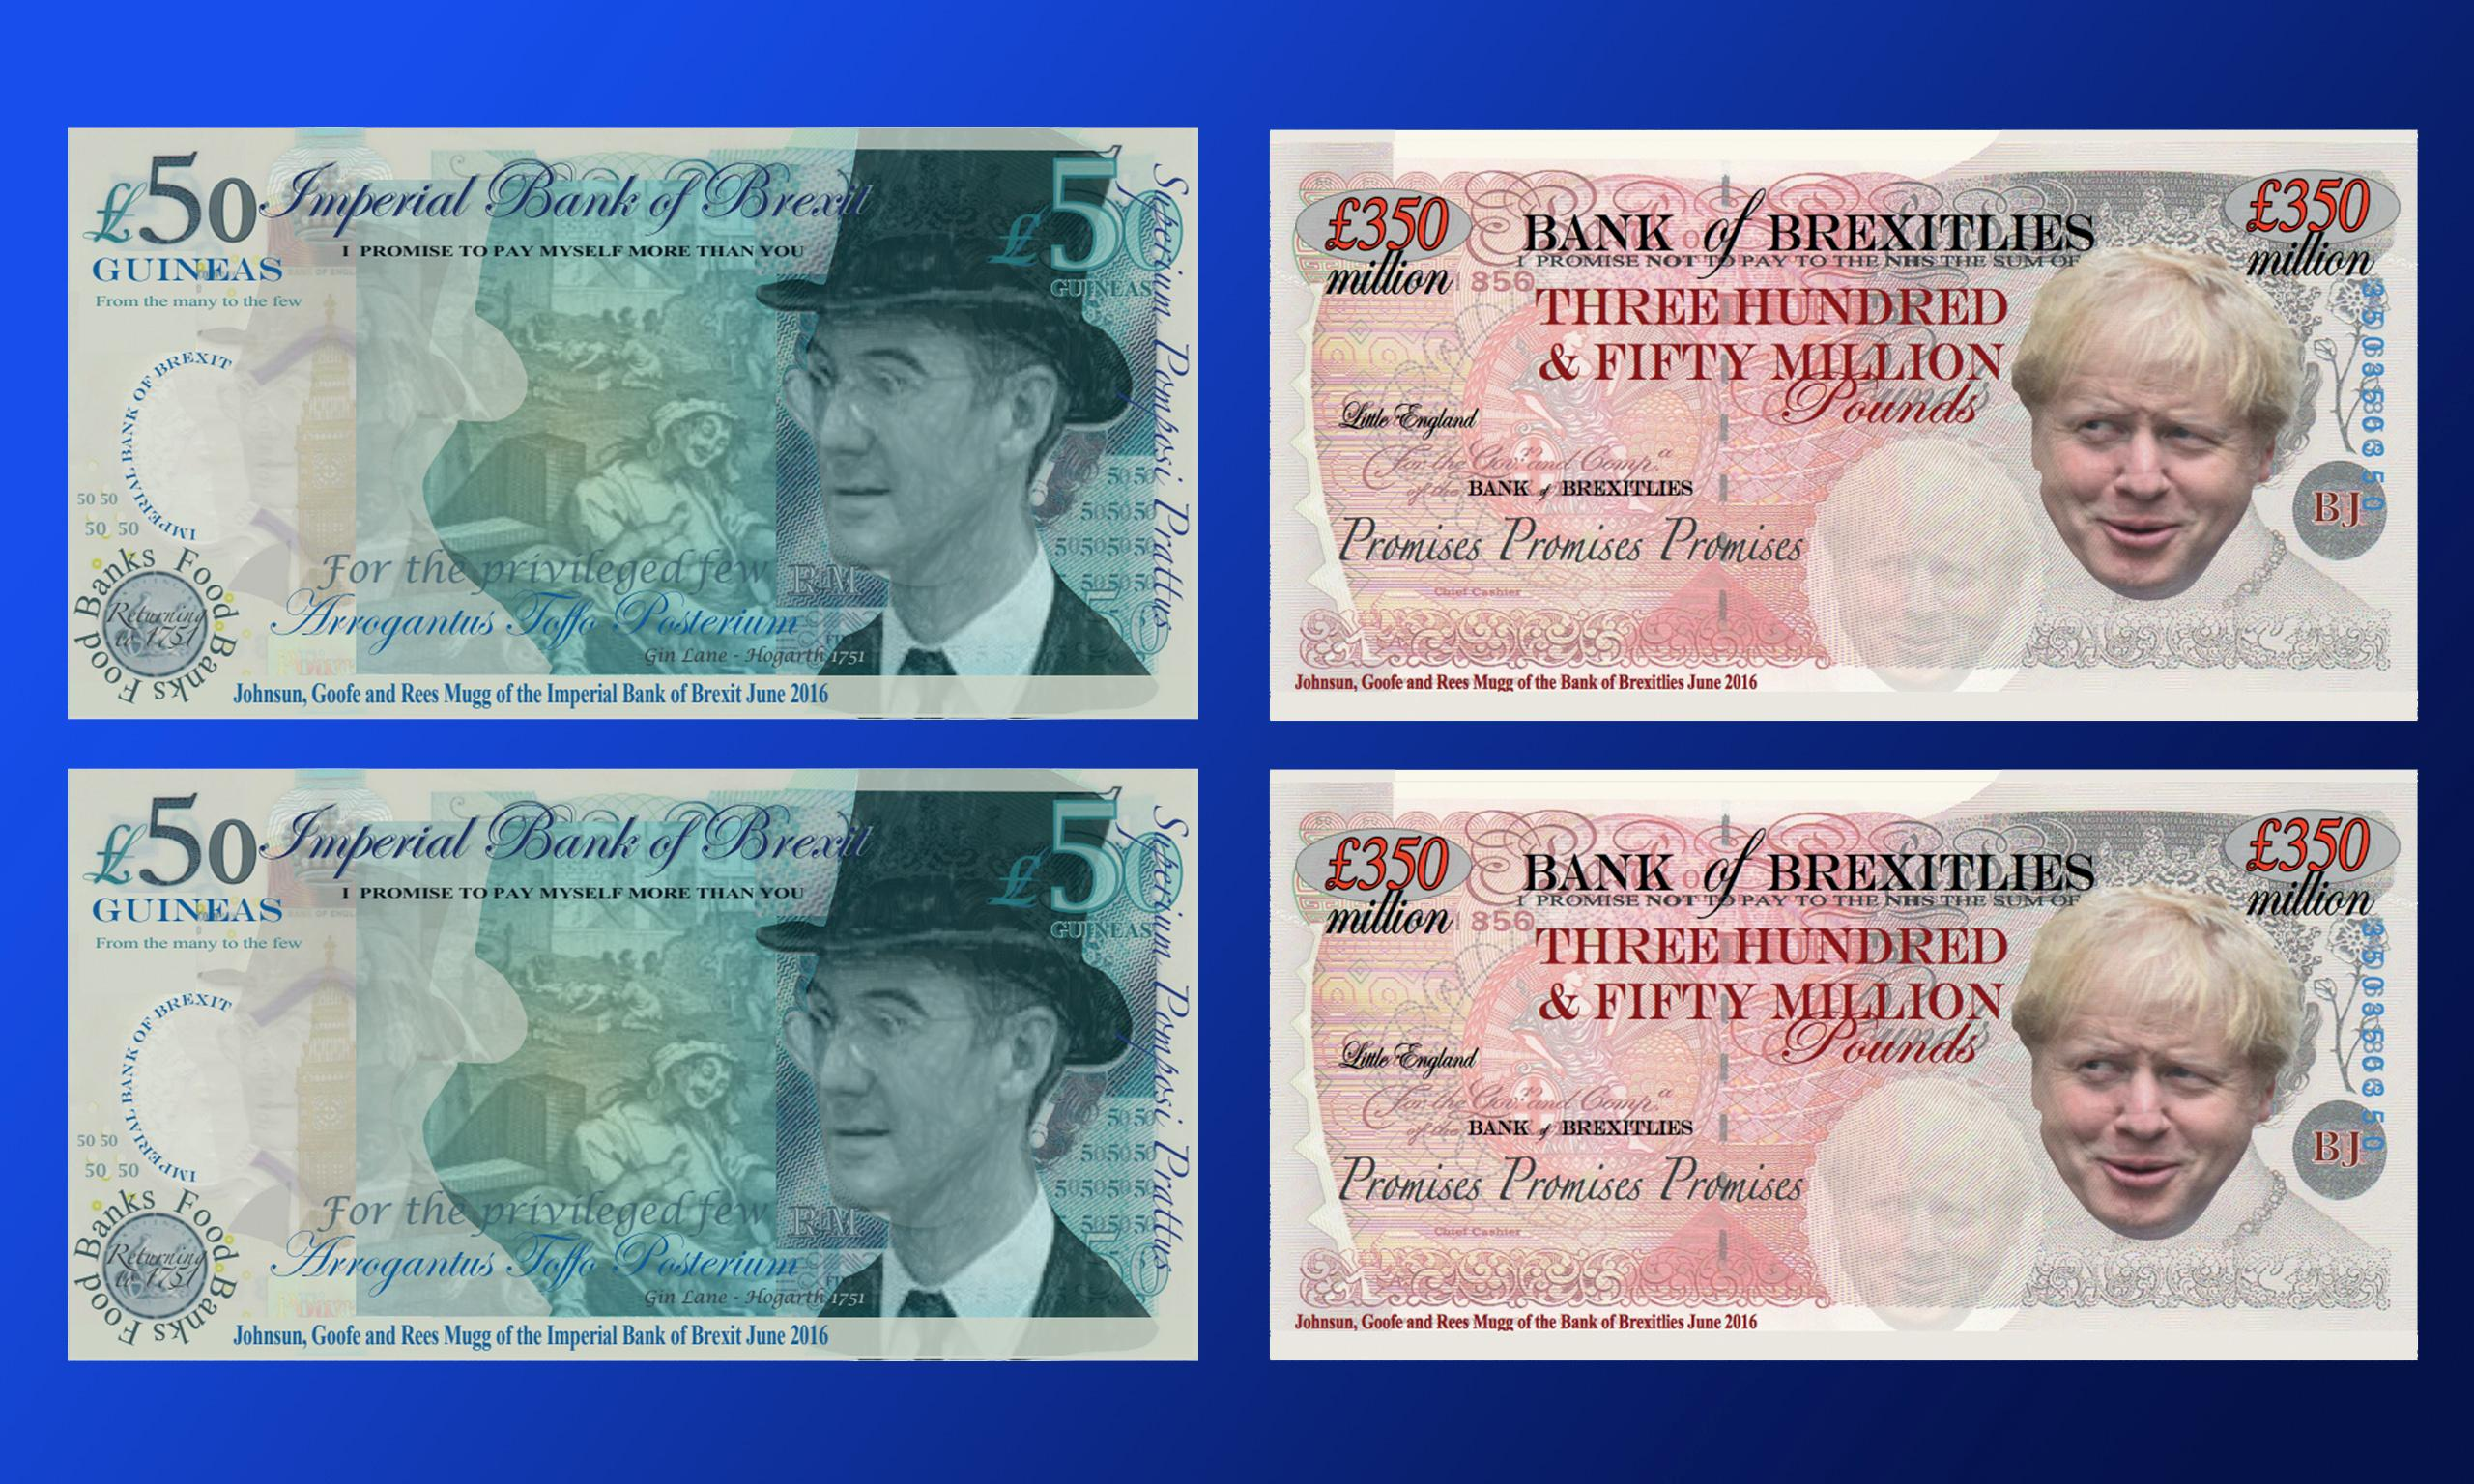 Fake anti-Brexit banknotes added to British Museum collection